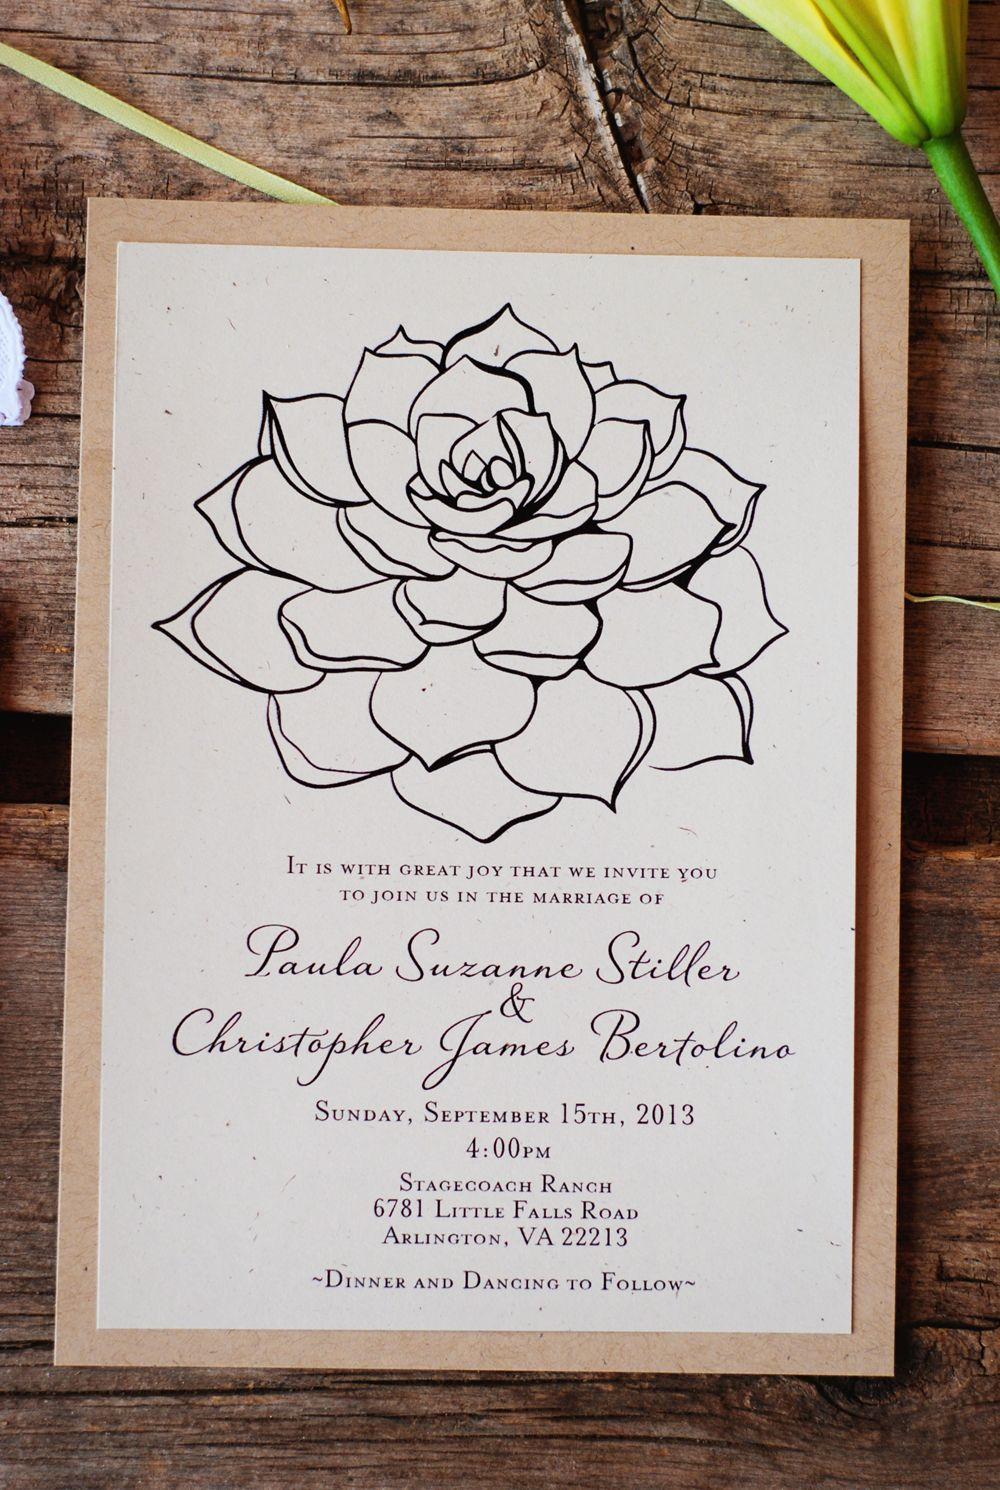 Succulent Wedding Invitations - Vintage Rustic Modern - Recycled ...